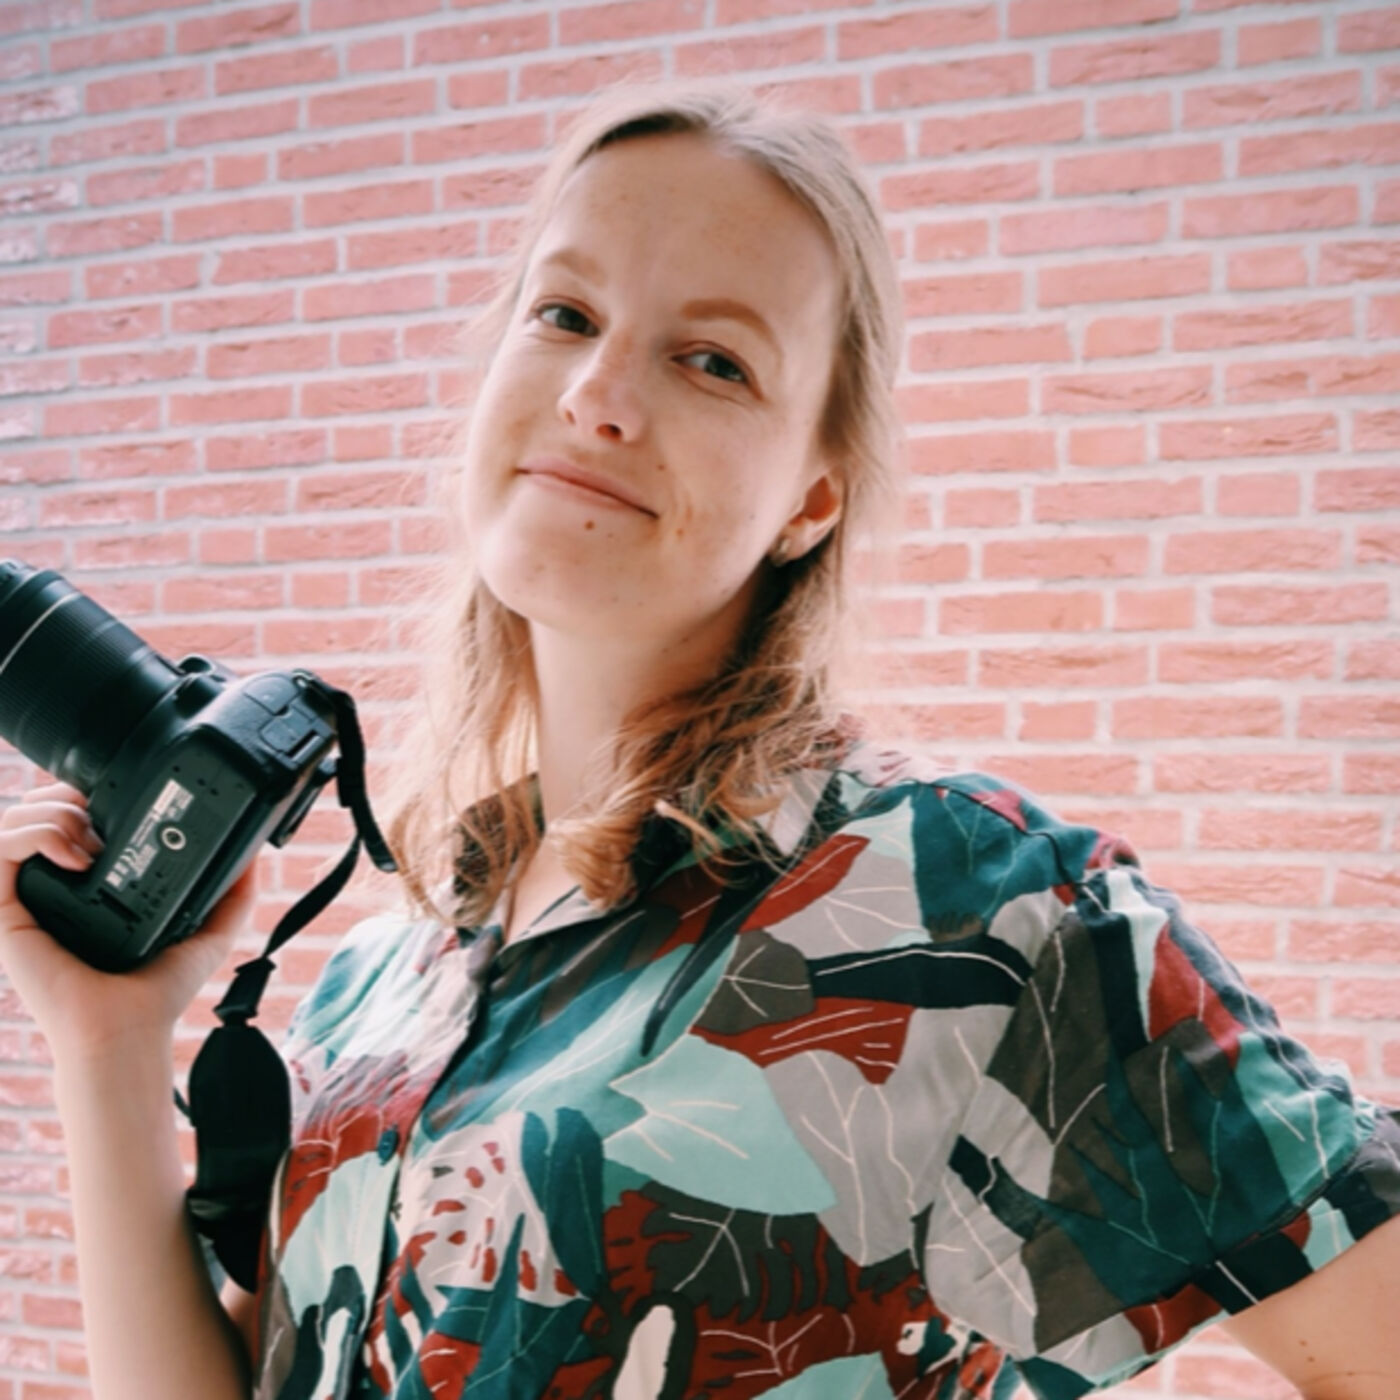 How can I use Video Marketing for myself? w/ Iris Boogaard   The Freelancer Talk #7